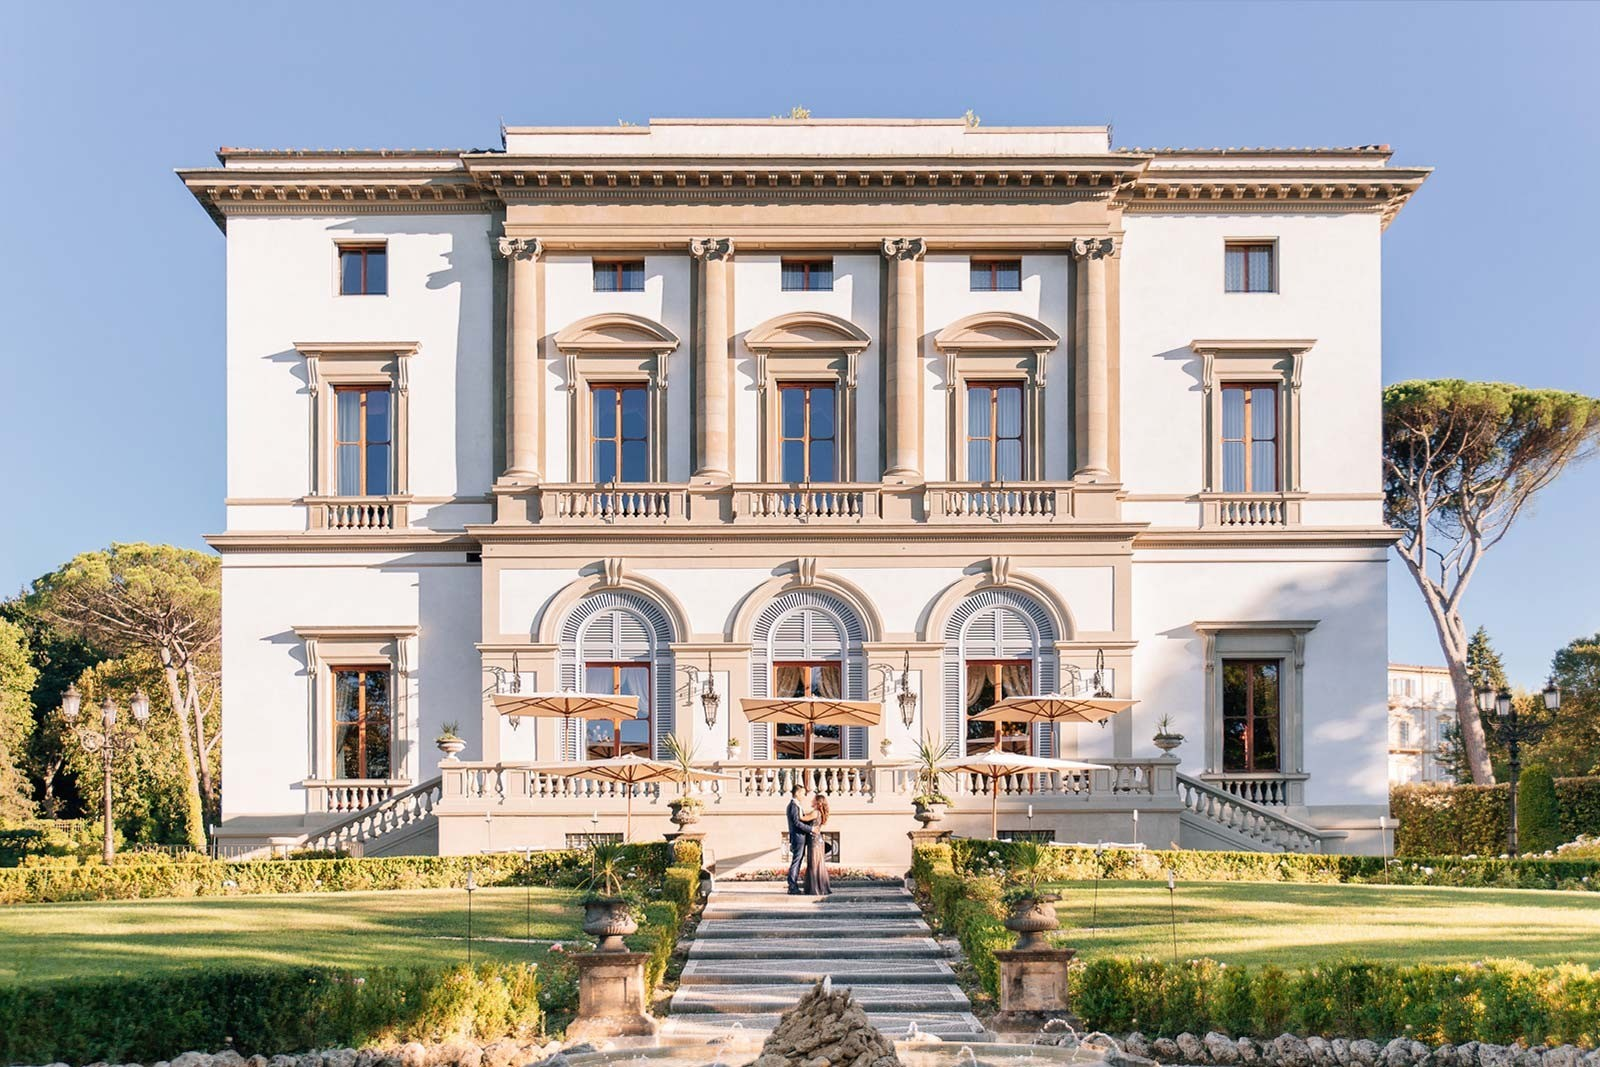 Villa Cora: a luxurious wedding venue in Florence